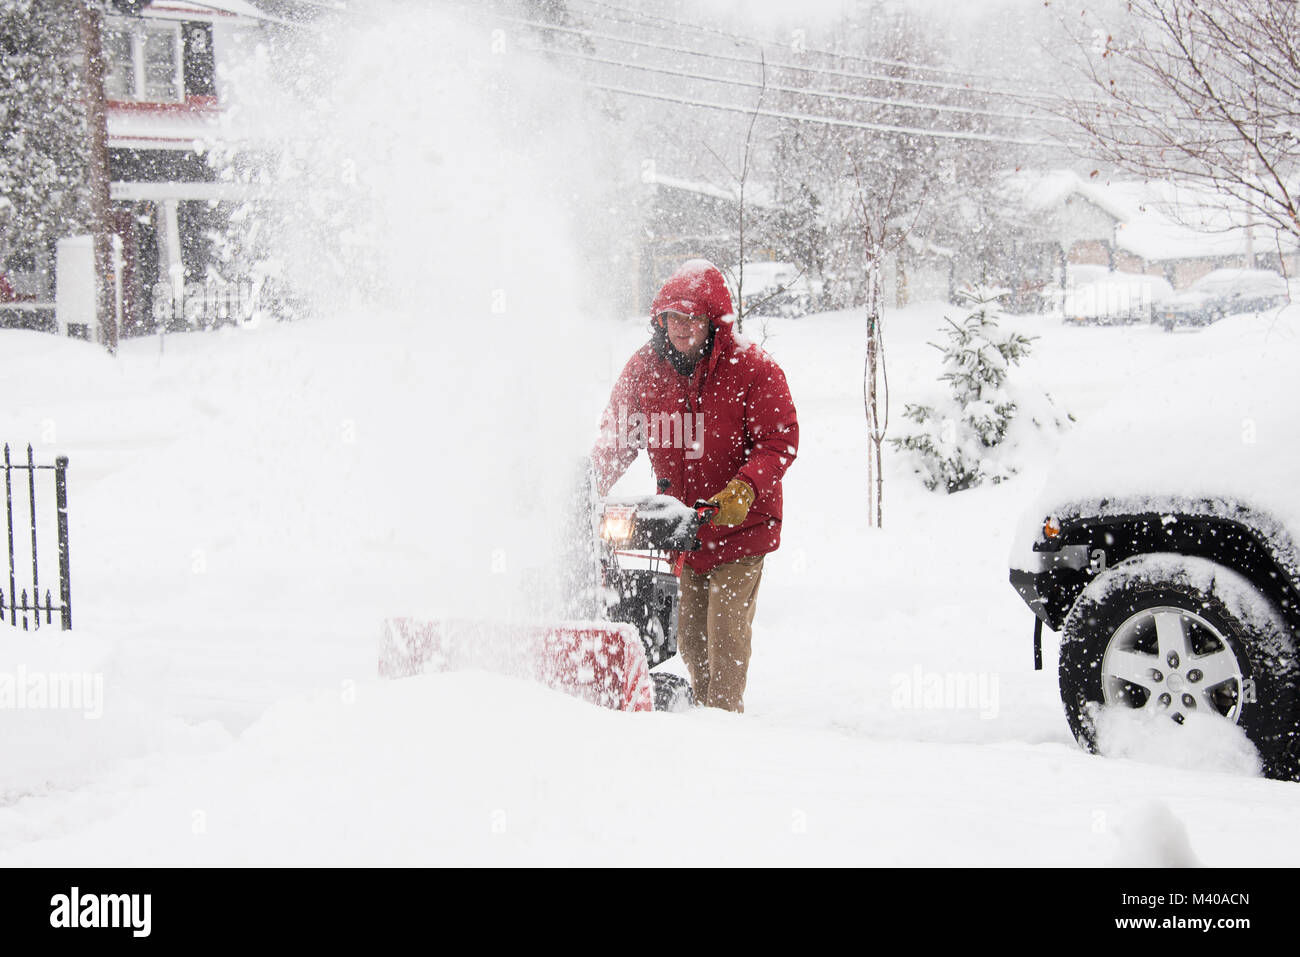 man-running-a-snowblower-blowing-snow-fr